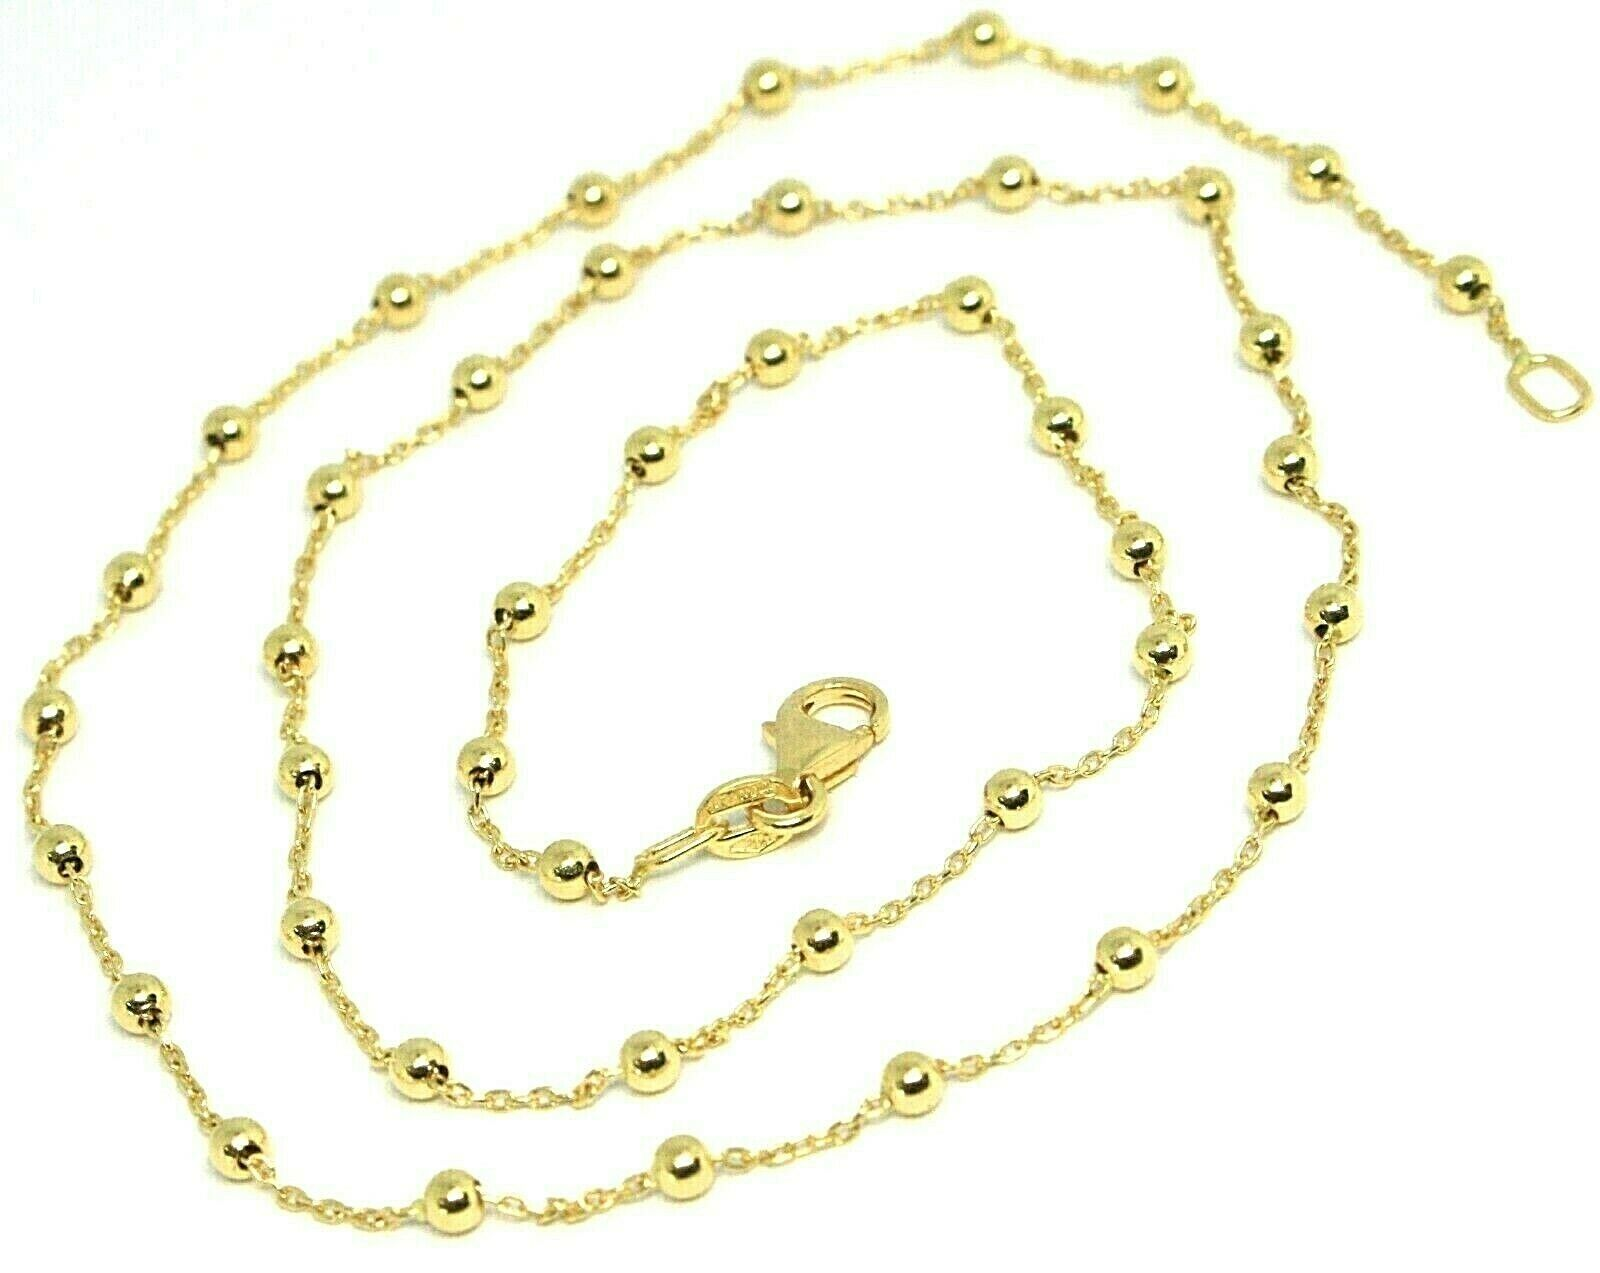 Chain Yellow Gold 750 18K, Balls alternate oval, long 45 80 90 cm, Necklace